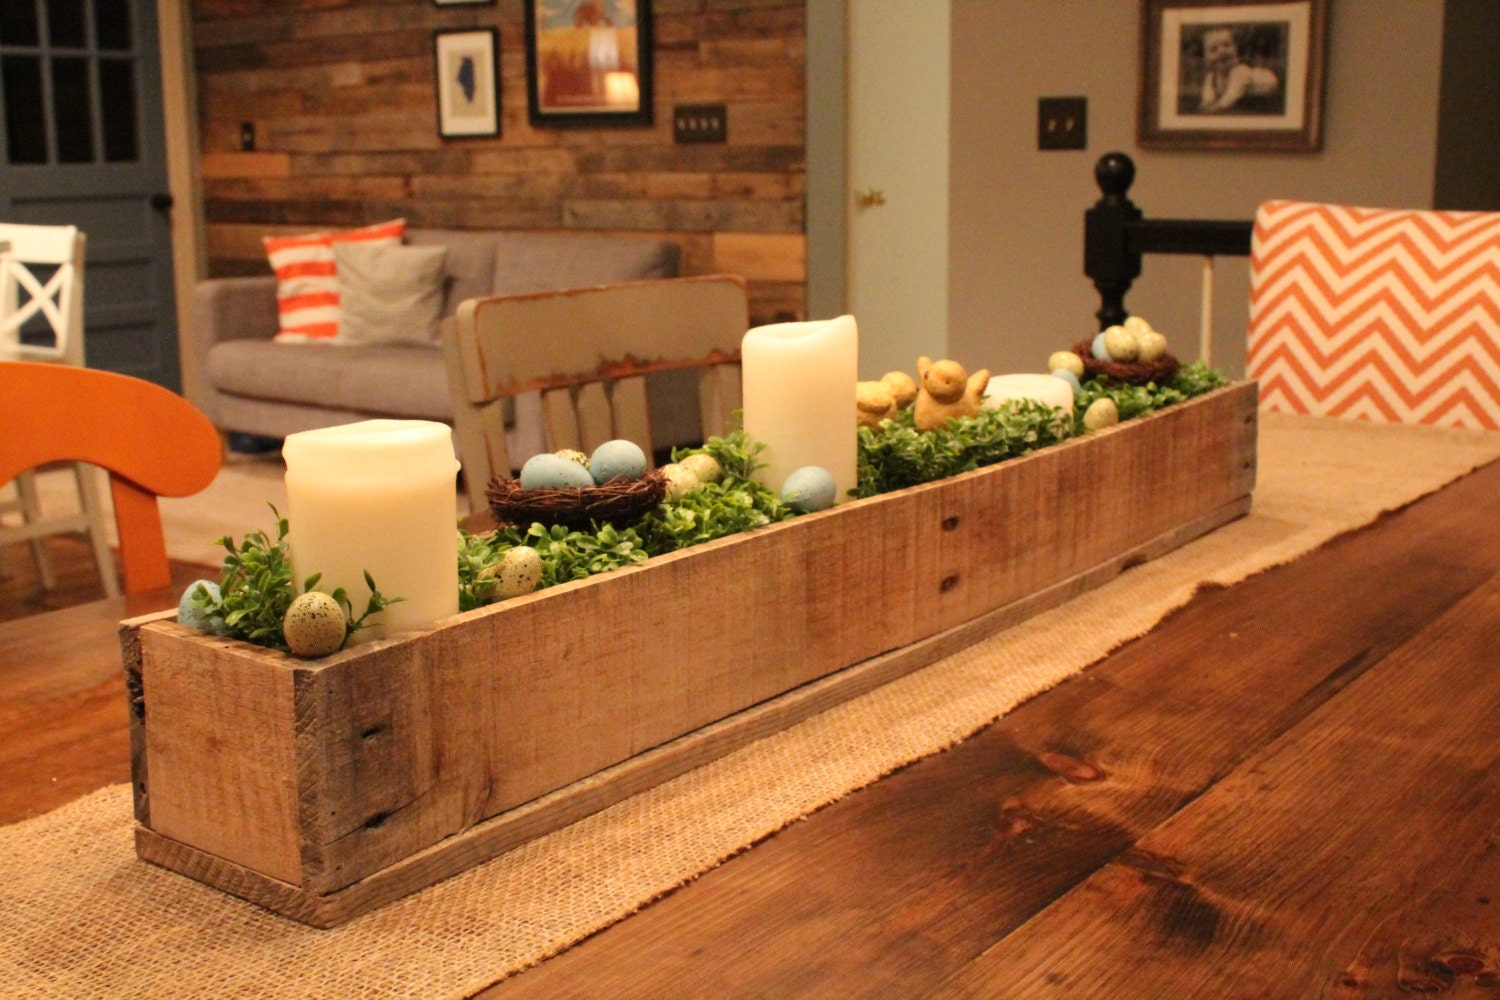 Centerpiece box made of rustic reclaimed wood planter